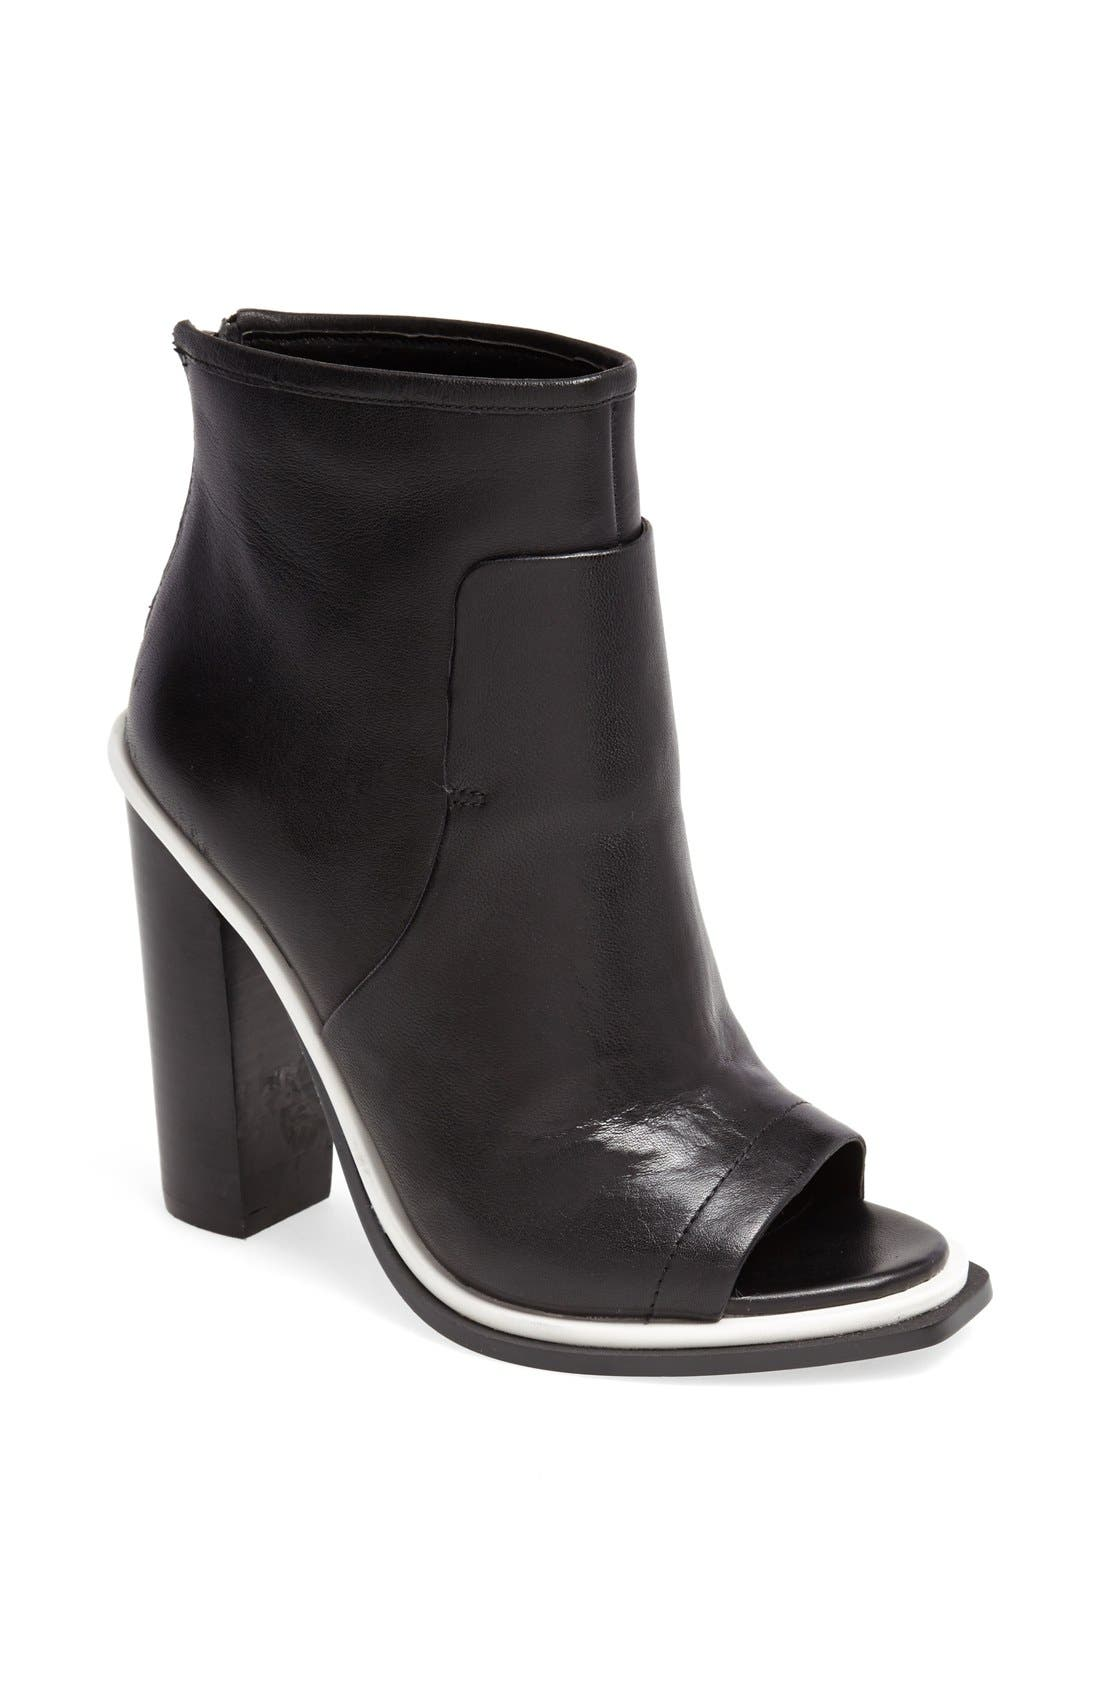 'Pounce' Peep Toe Boot, Main, color, 001